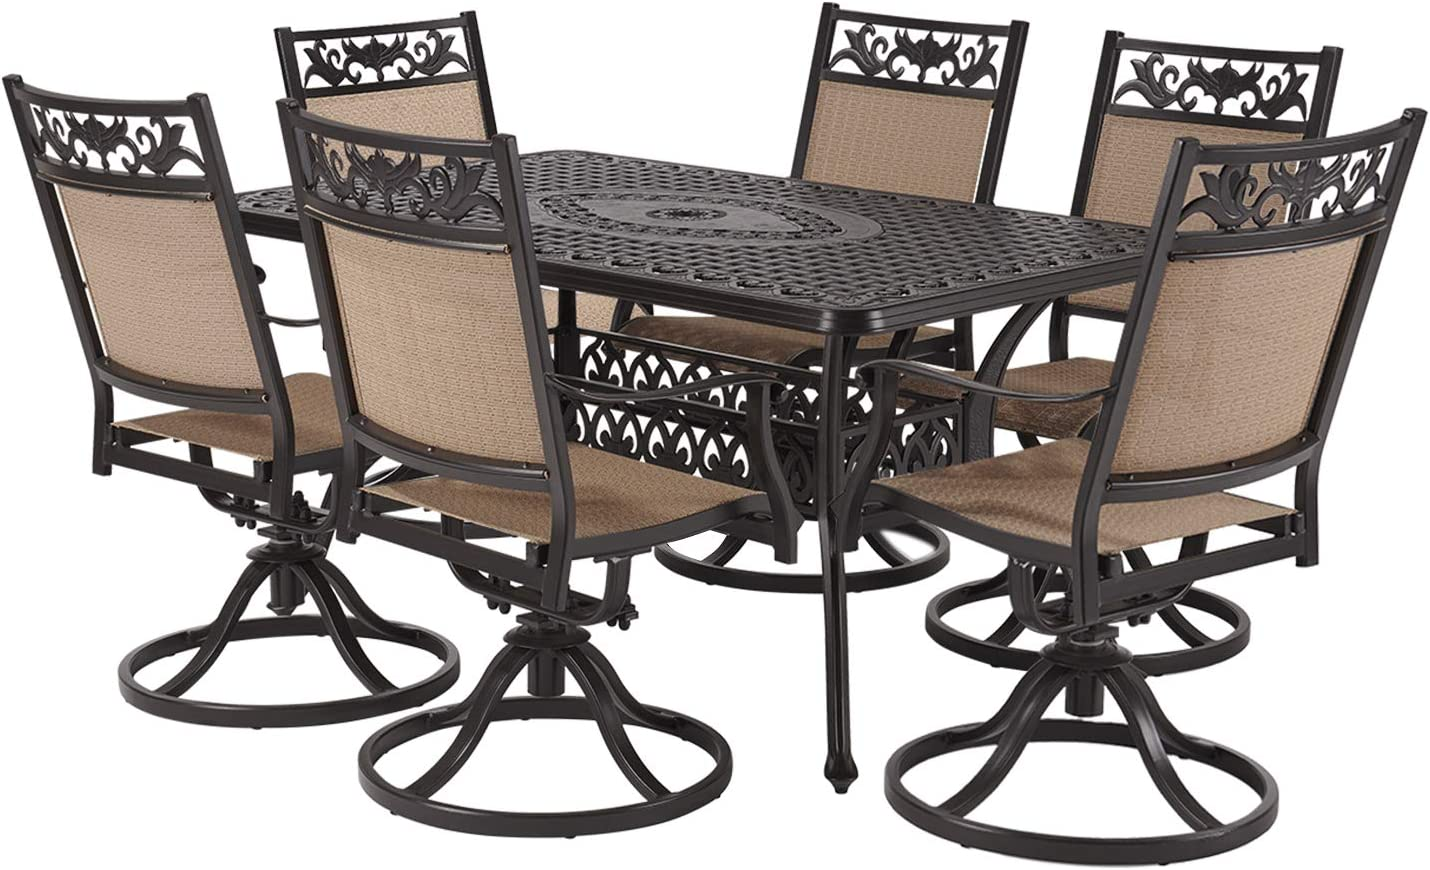 "Laurel Canyon Outdoor Dining Set, 7 Piece Cast Aluminum Furniture, 6 Patio Swivel Chairs, 36"" x 60"" Rectangular Table with 1.97"" Umbrella Hole for Yard Garden Deck, Dark Brown"